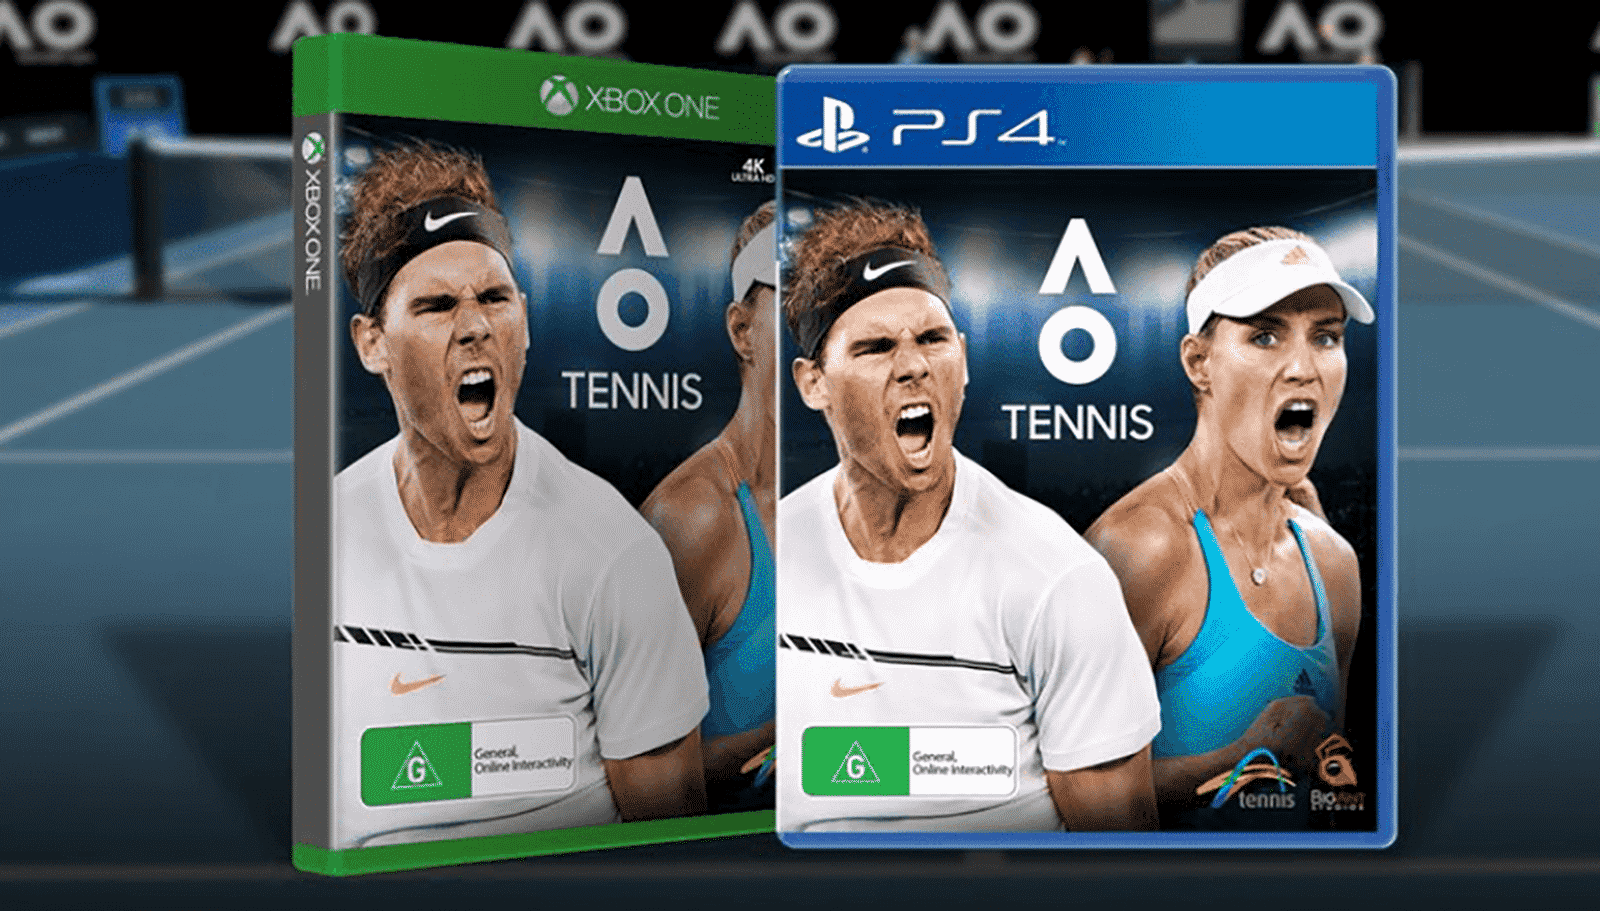 Ao Tennis Releases January 16 On Xbox One And Ps4 Sports Gamers Online Ps4 Or Xbox One Tennis Super Mario Run